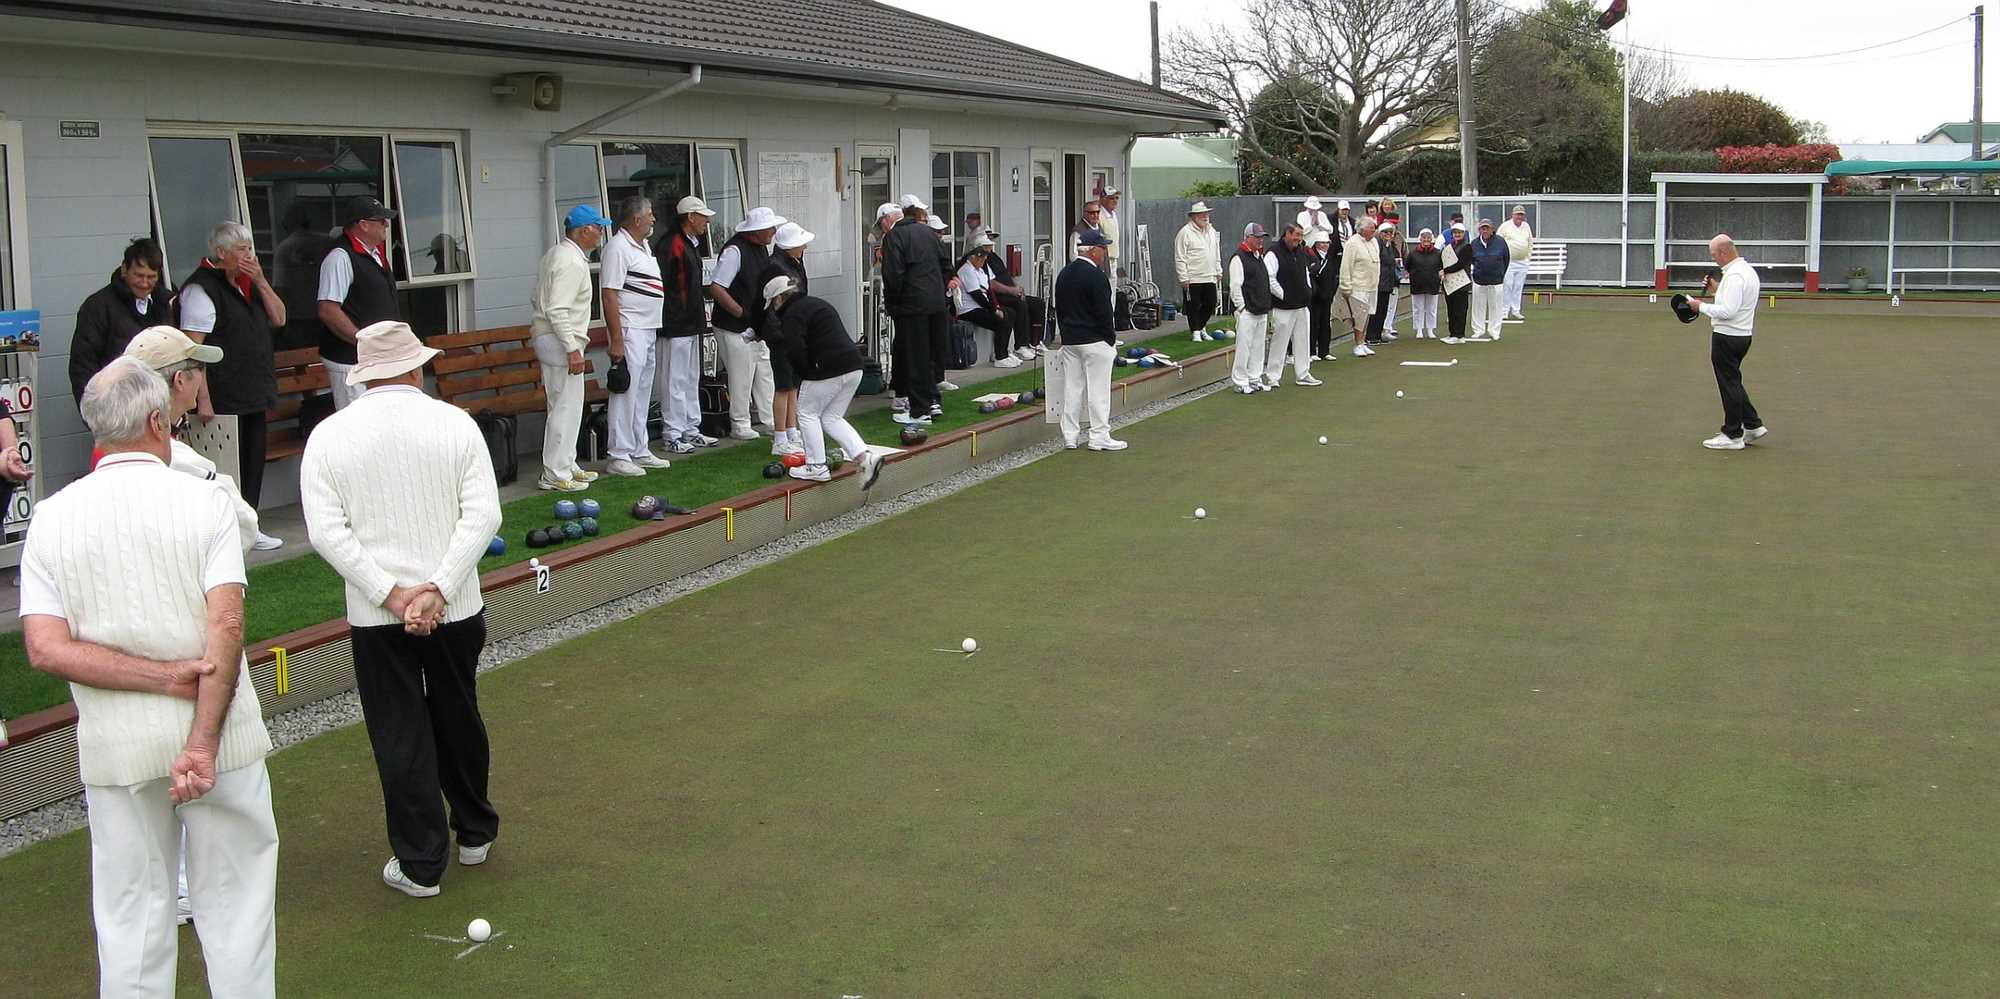 Bruce Welcomes a Full Green of Bowlers for the Bisset Trophy - 28 September